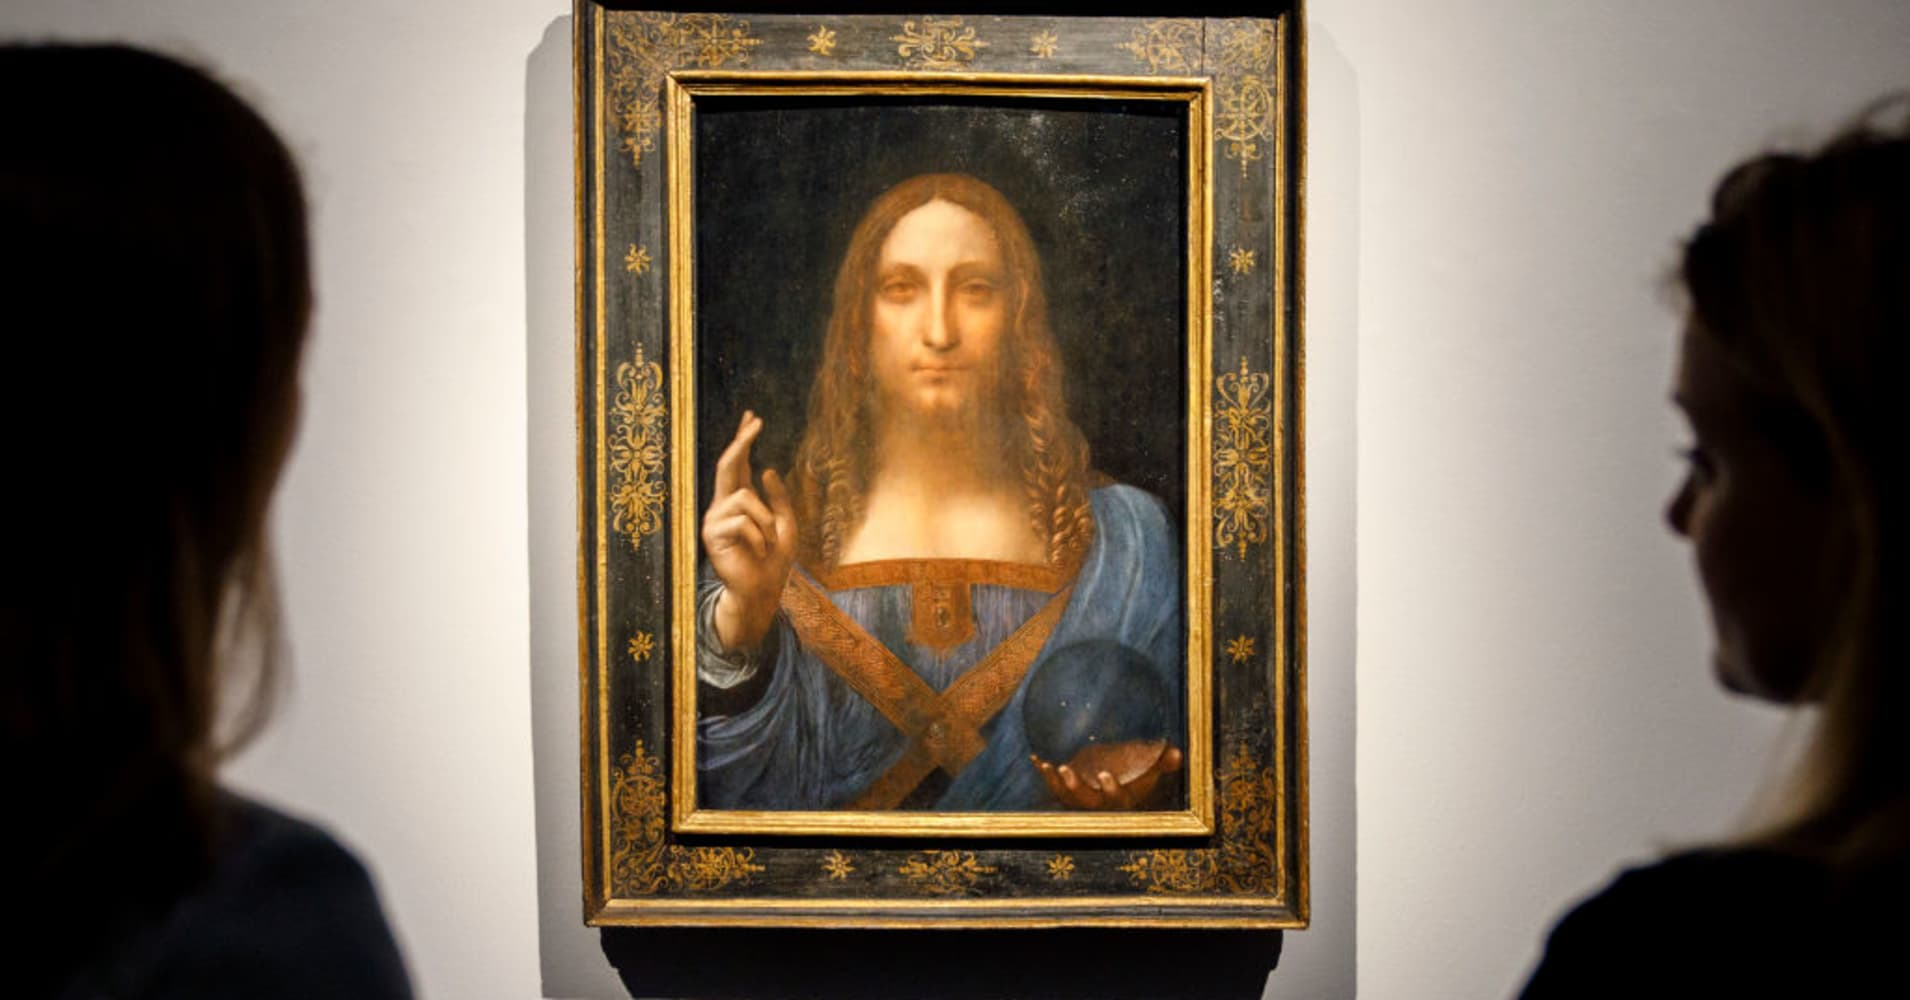 Leonardo da Vinci painting sells for more than $450 million, breaking all-time art auction record